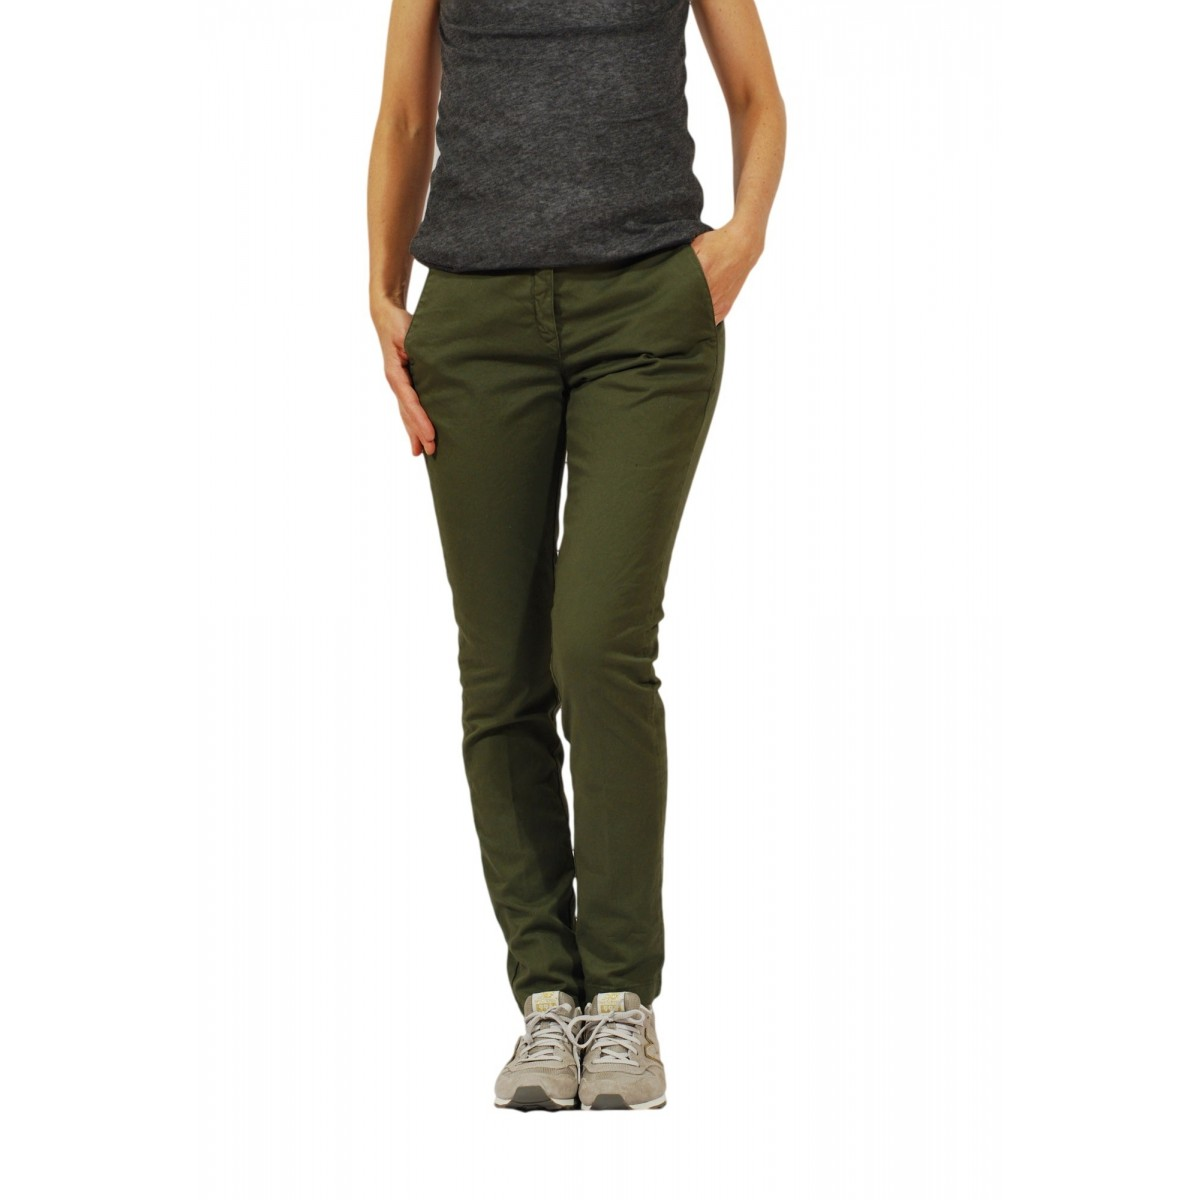 Pantalone Department Five Donna - P051 T0001 460